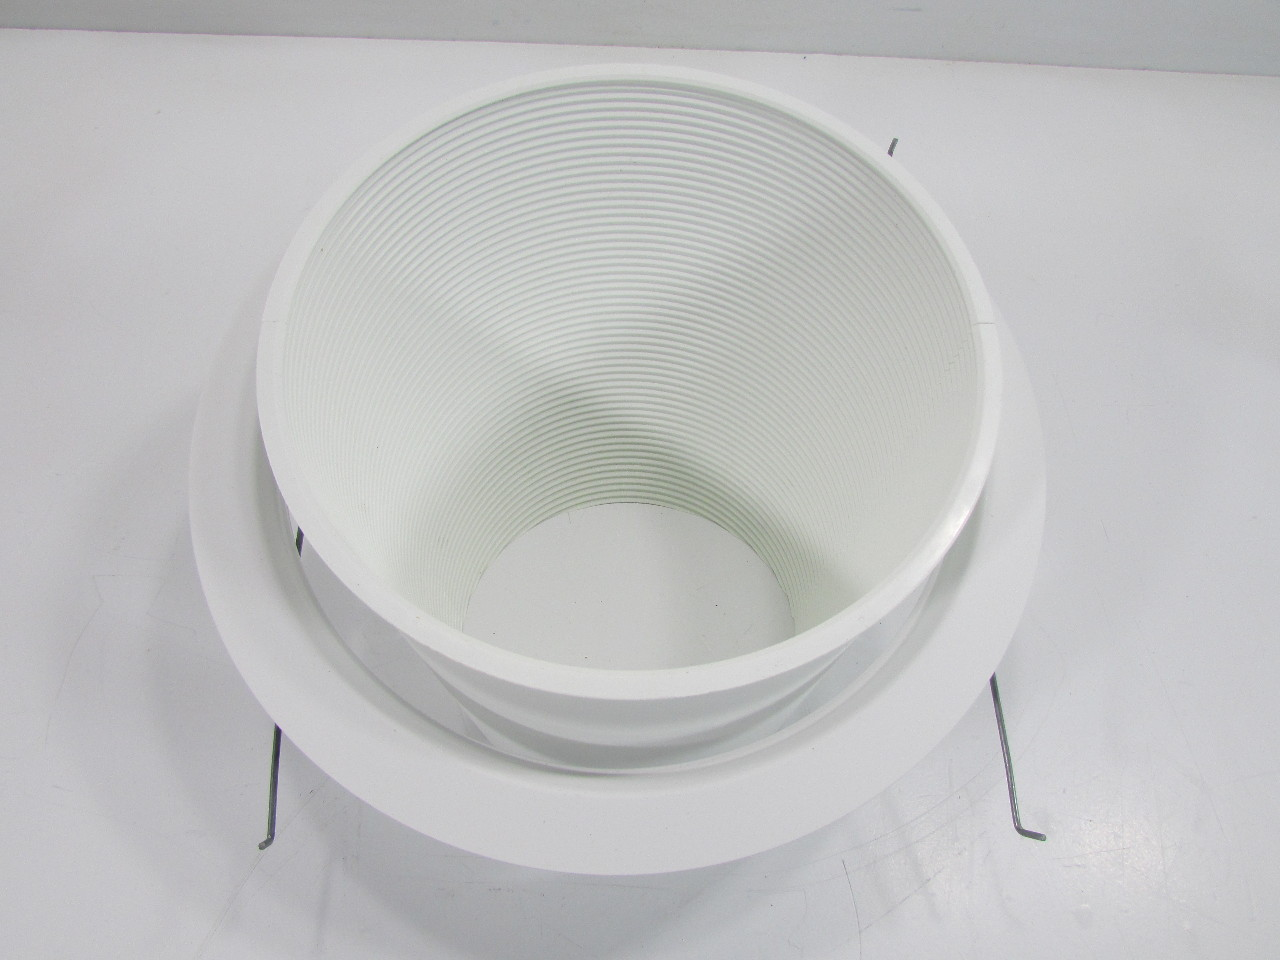 Halo Recessed Lighting Vapour Barrier : Quot new halo w recessed lighting trim premier equipment